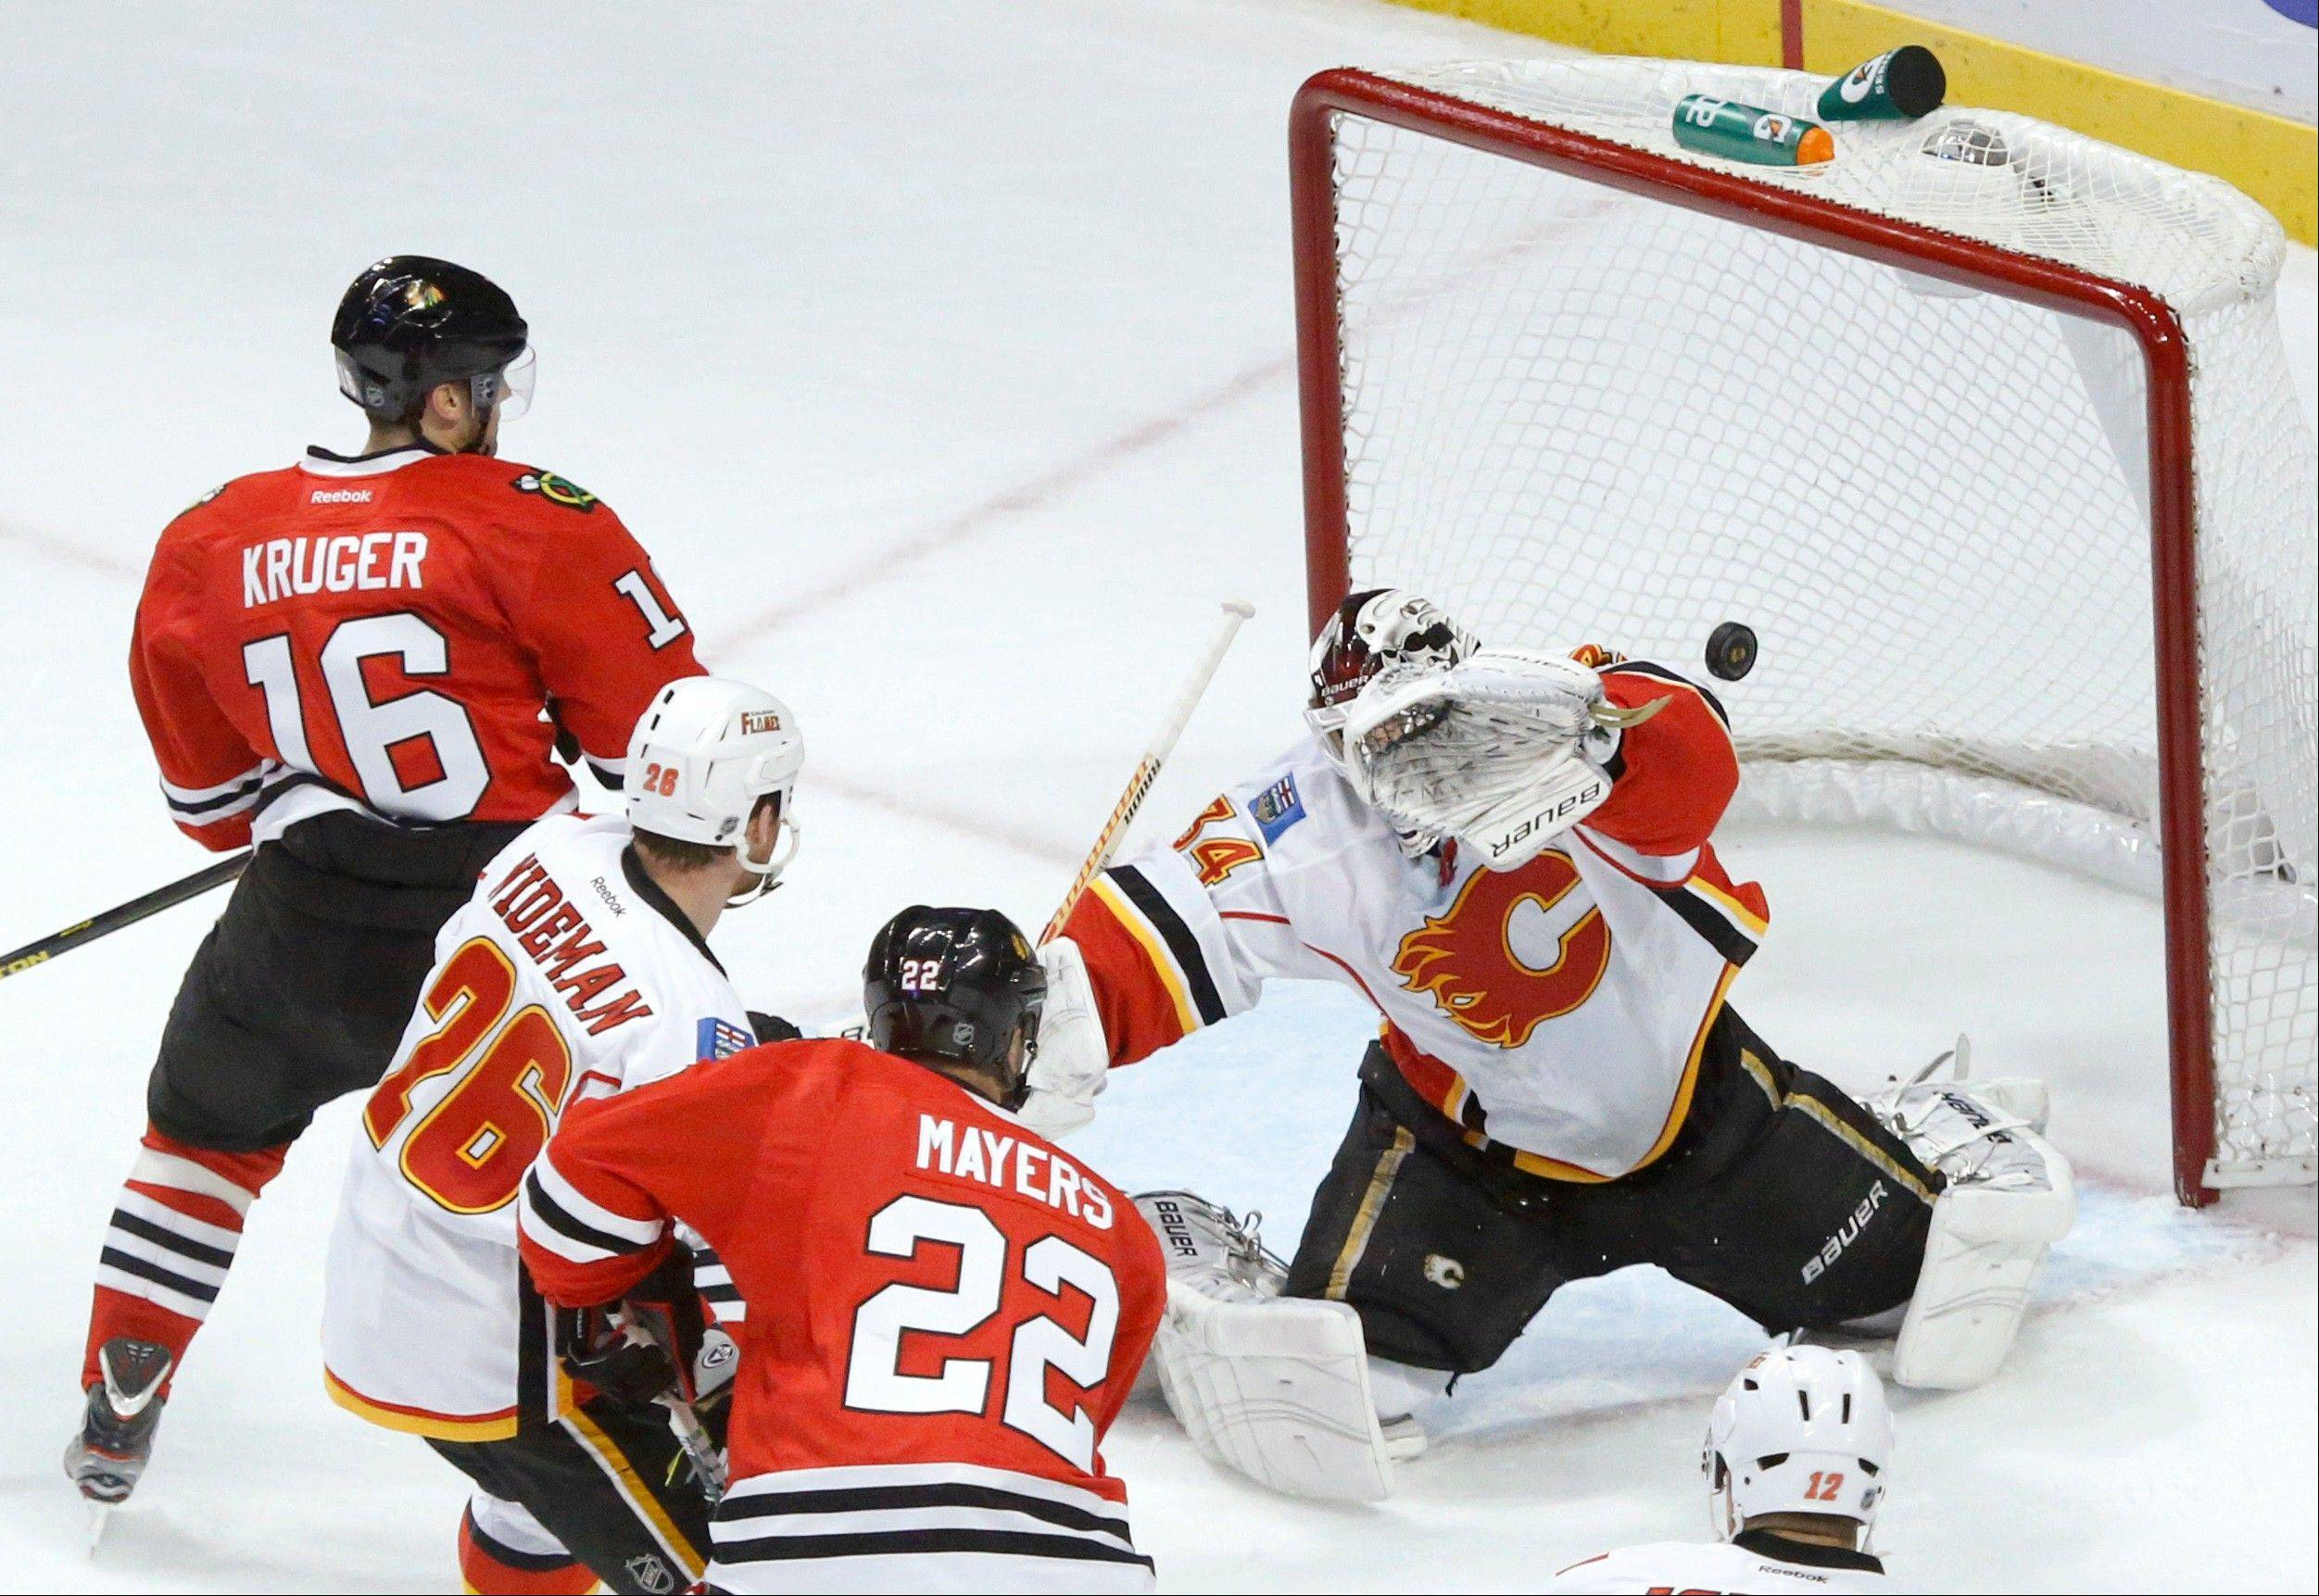 Flames goalie Miikka Kiprusoff is unable to make a glove save on a goal by Blackhawks defenseman Brent Seabrook that was deflected in by Calgary's Jarome Iginla.